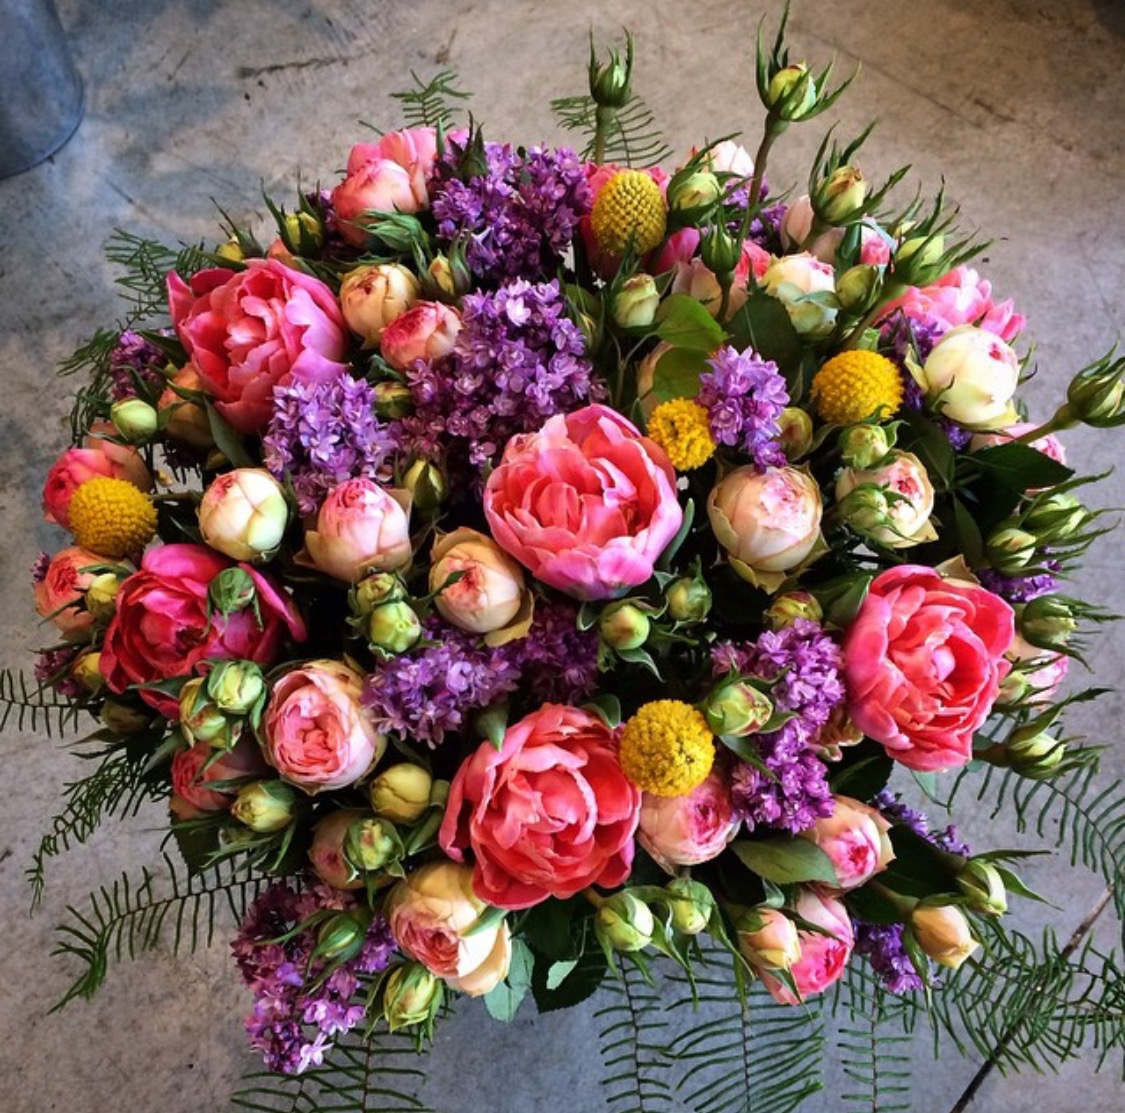 31. Colorful Designer Arrangement